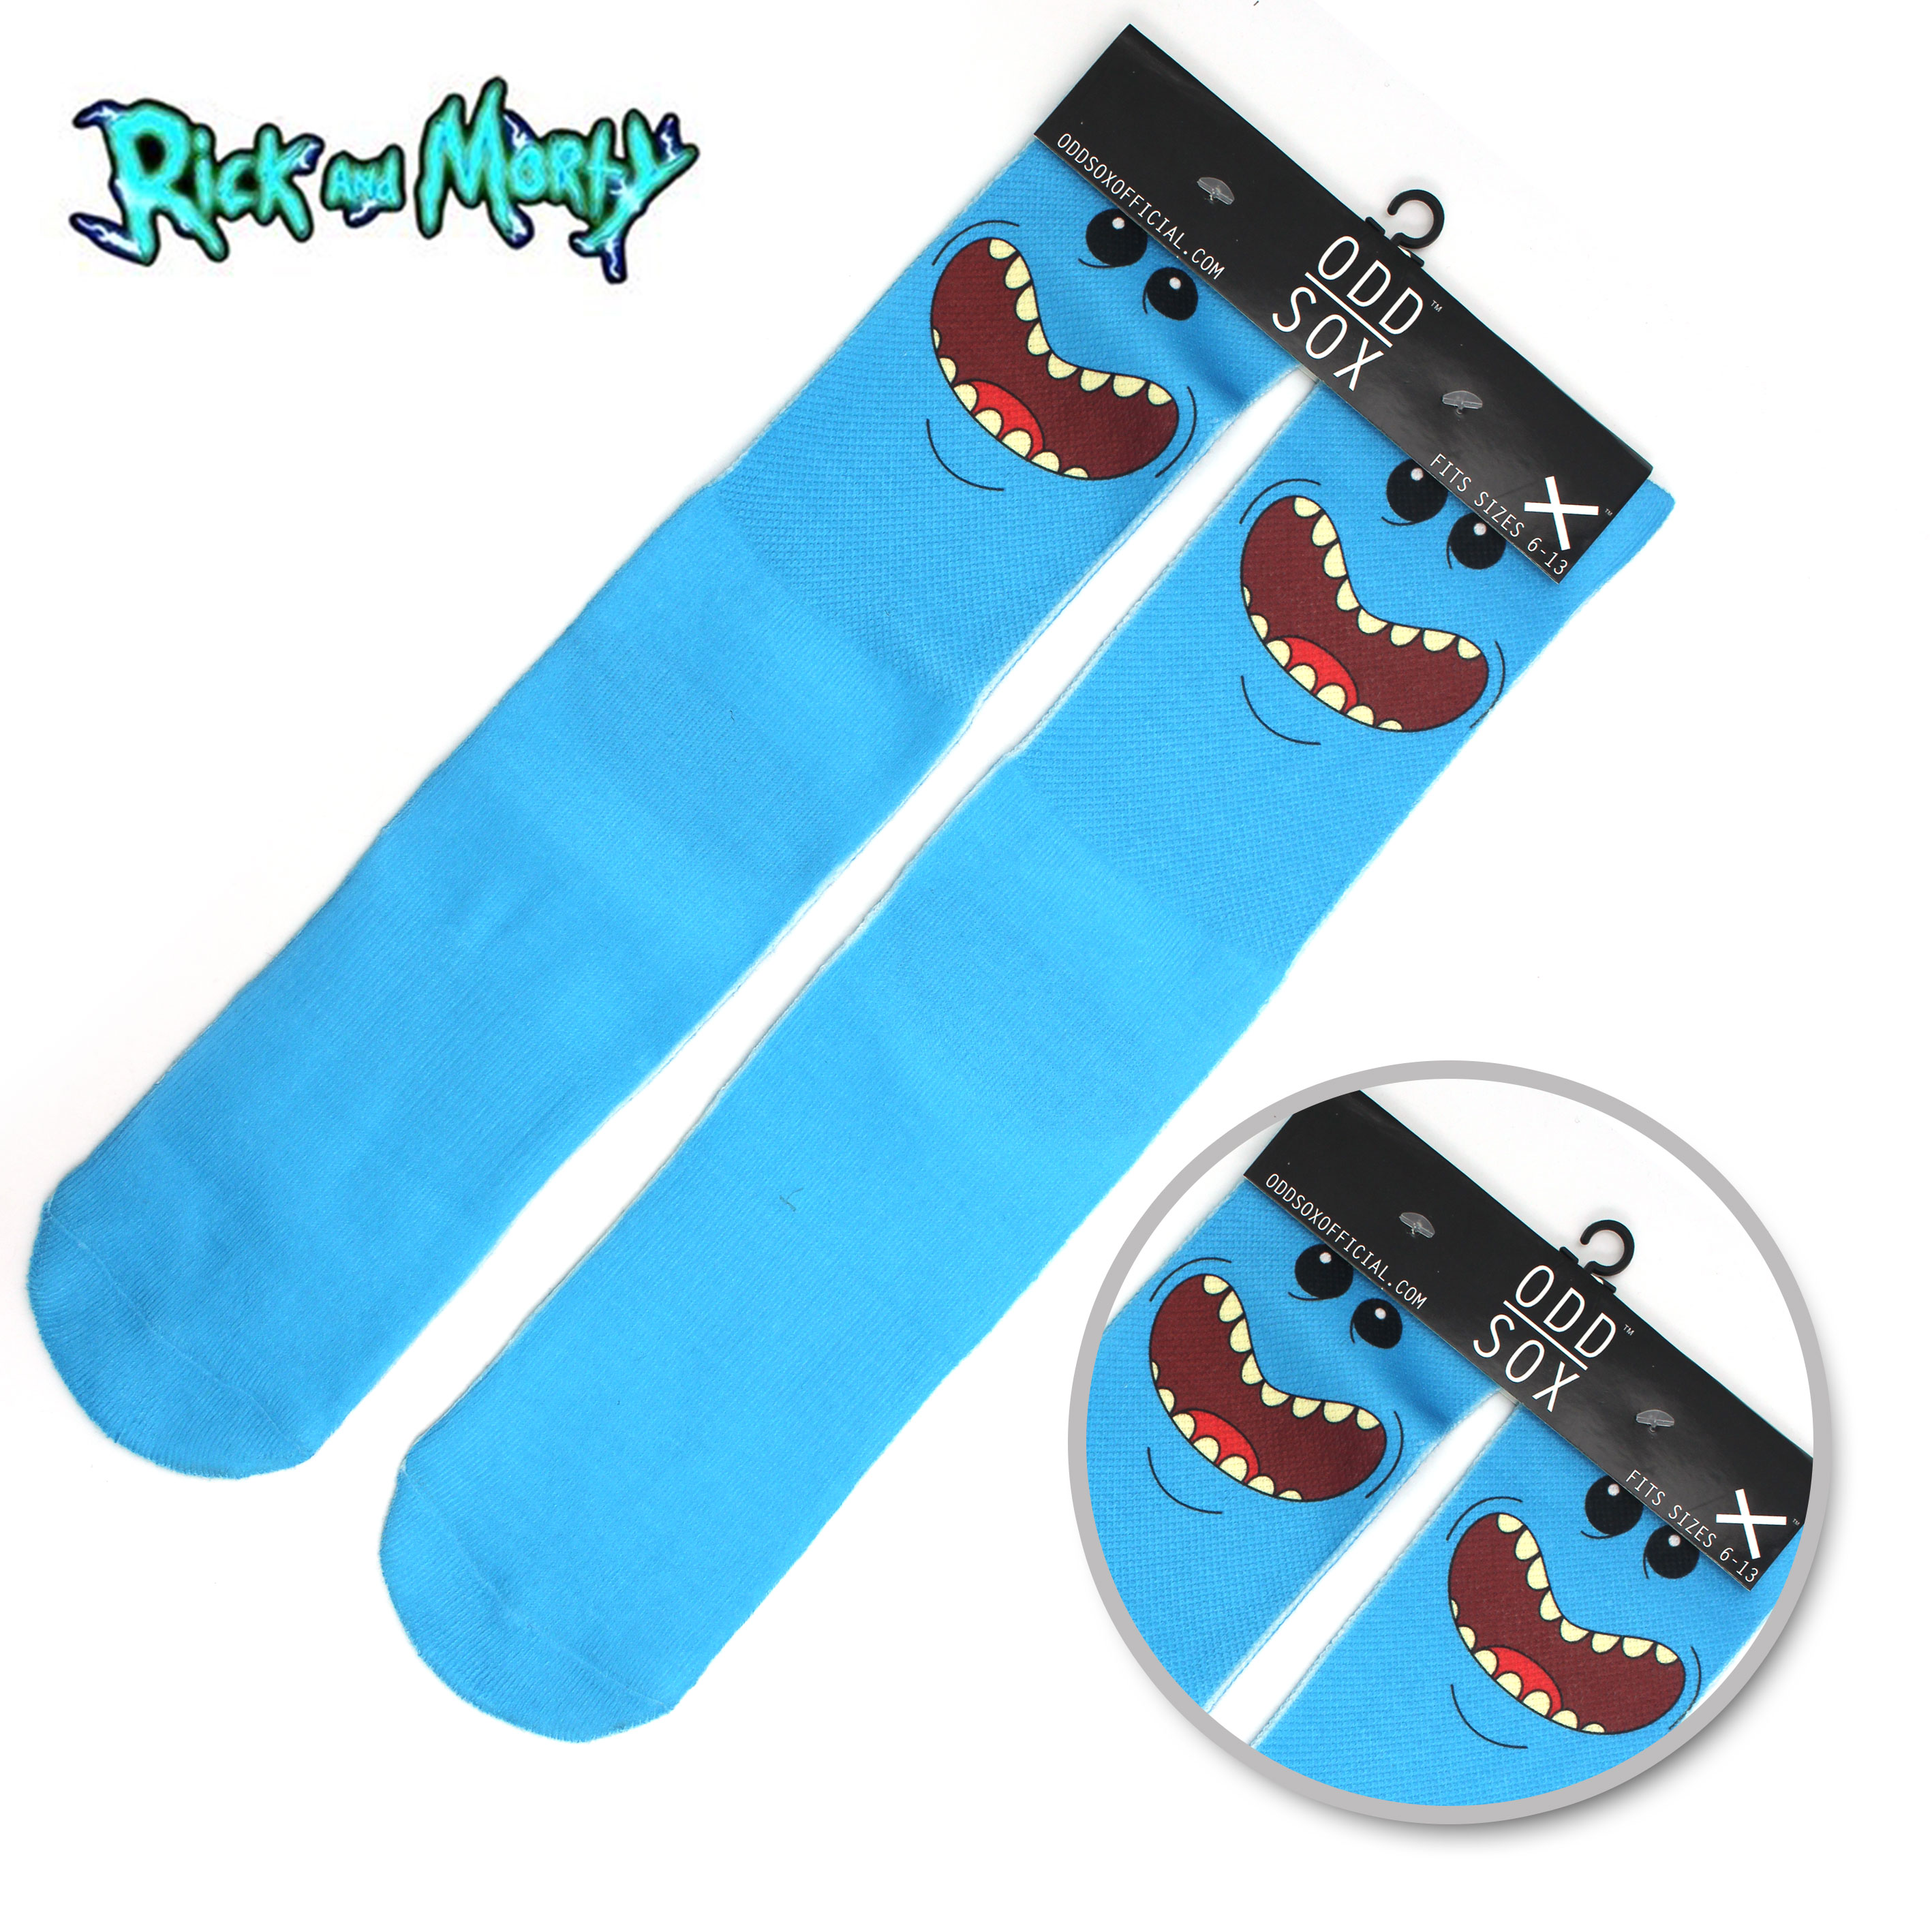 """4x16"""" Rick and Morty MEESEEKS Pickle Rick Blue/Green Cotton Socks Colorful Stockings Warm Tights Cartoon Fashion Gifts"""